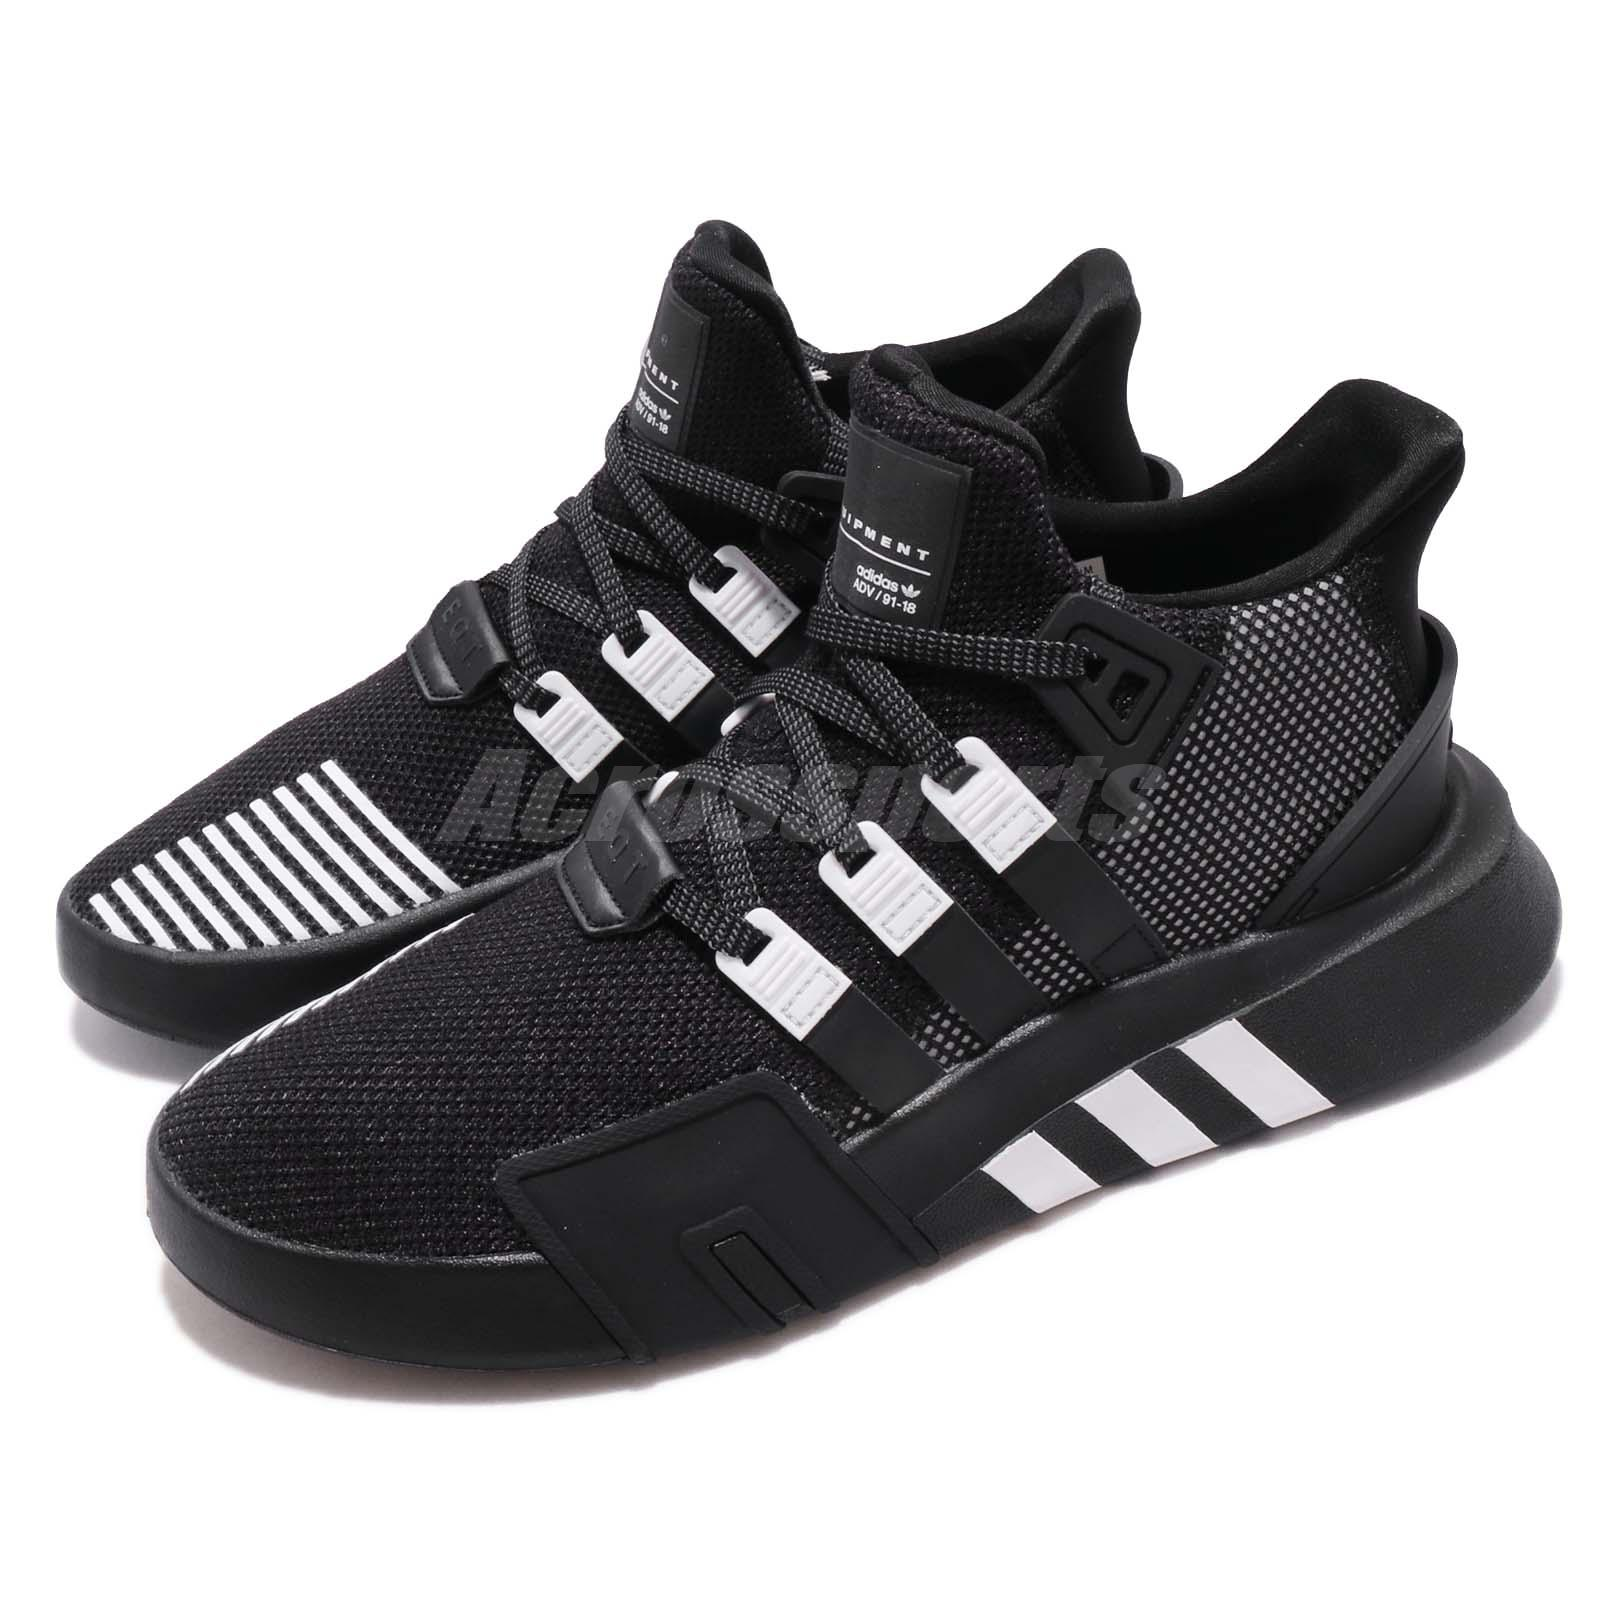 new arrival c4421 11e63 Details about adidas Originals EQT Bask ADV Black White Men Running Casual  Shoe Sneaker BD7773